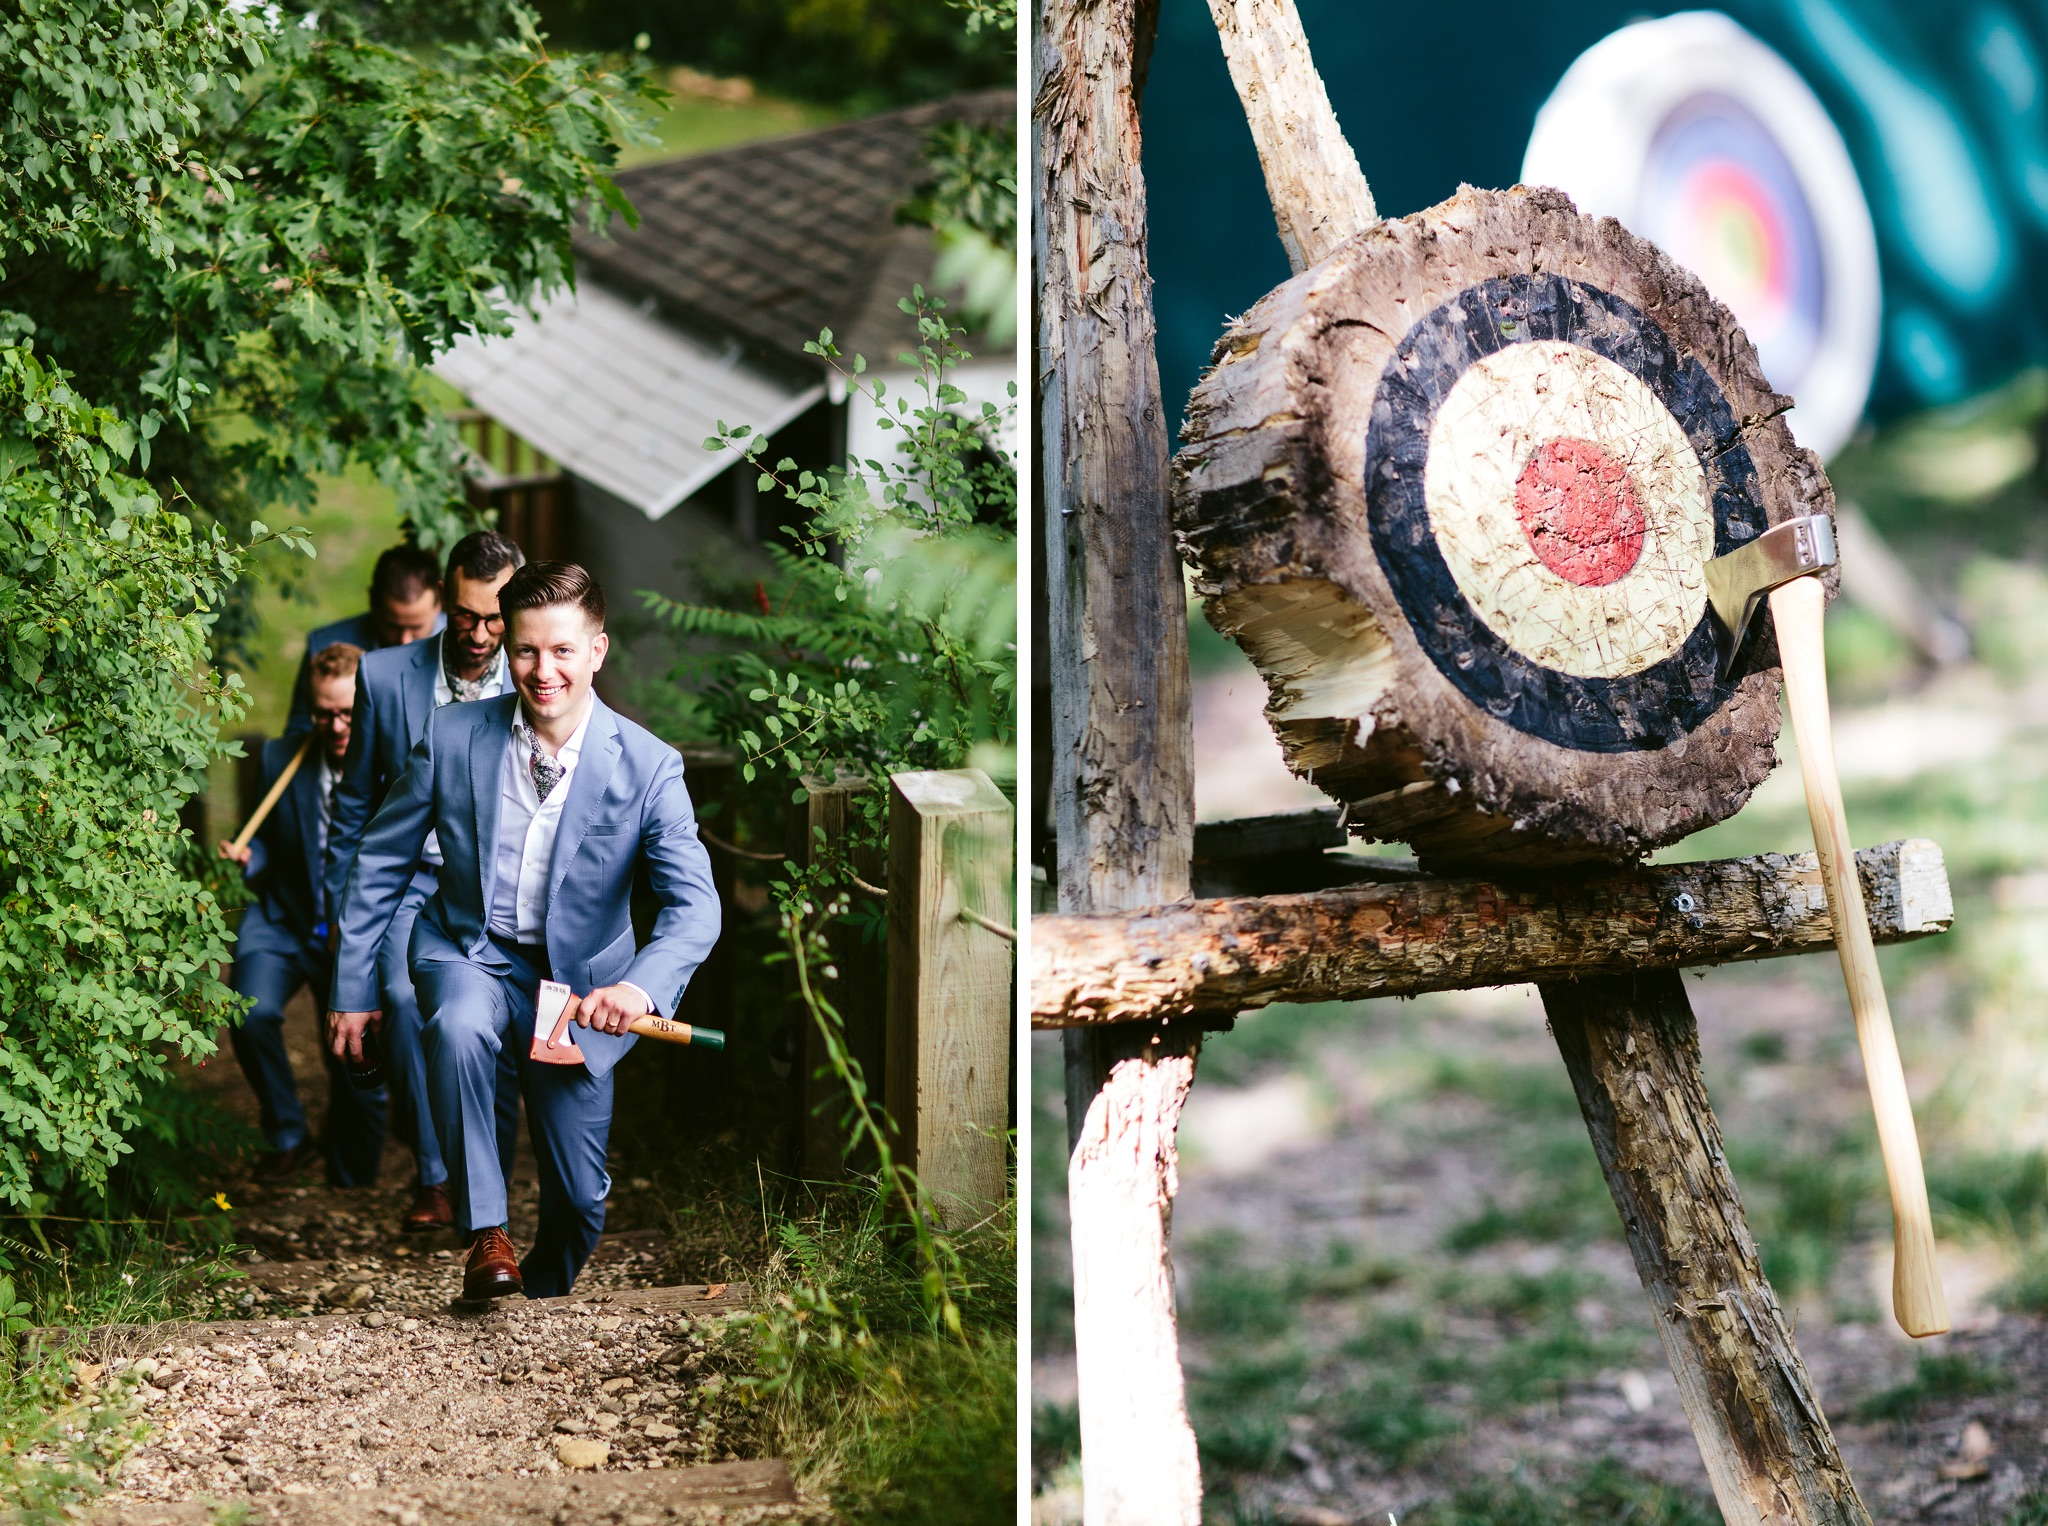 Nicodem-Creative-Wedding-Photography-Camp-Wandawega-Inspiration-Chicago-Vintage-Fun-Gussied-Band-Natalie-Mike